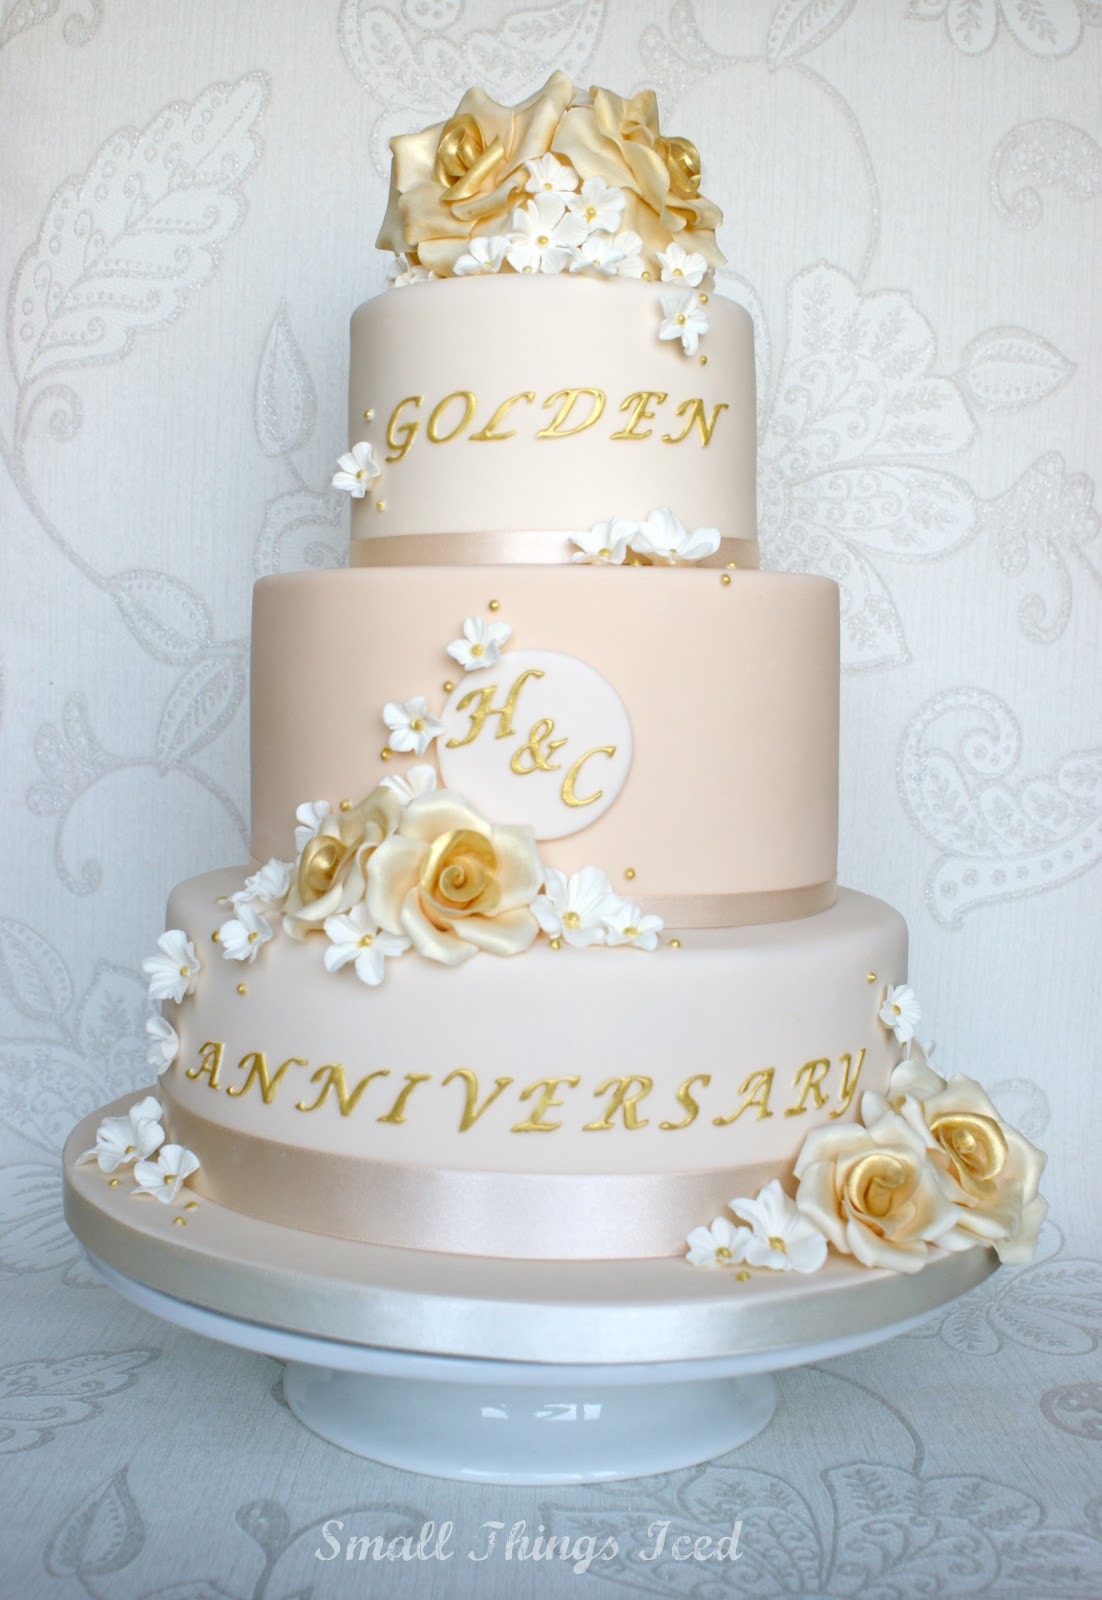 Golden Wedding Anniversary Cakes  Small Things Iced Golden Wedding Anniversary Cake